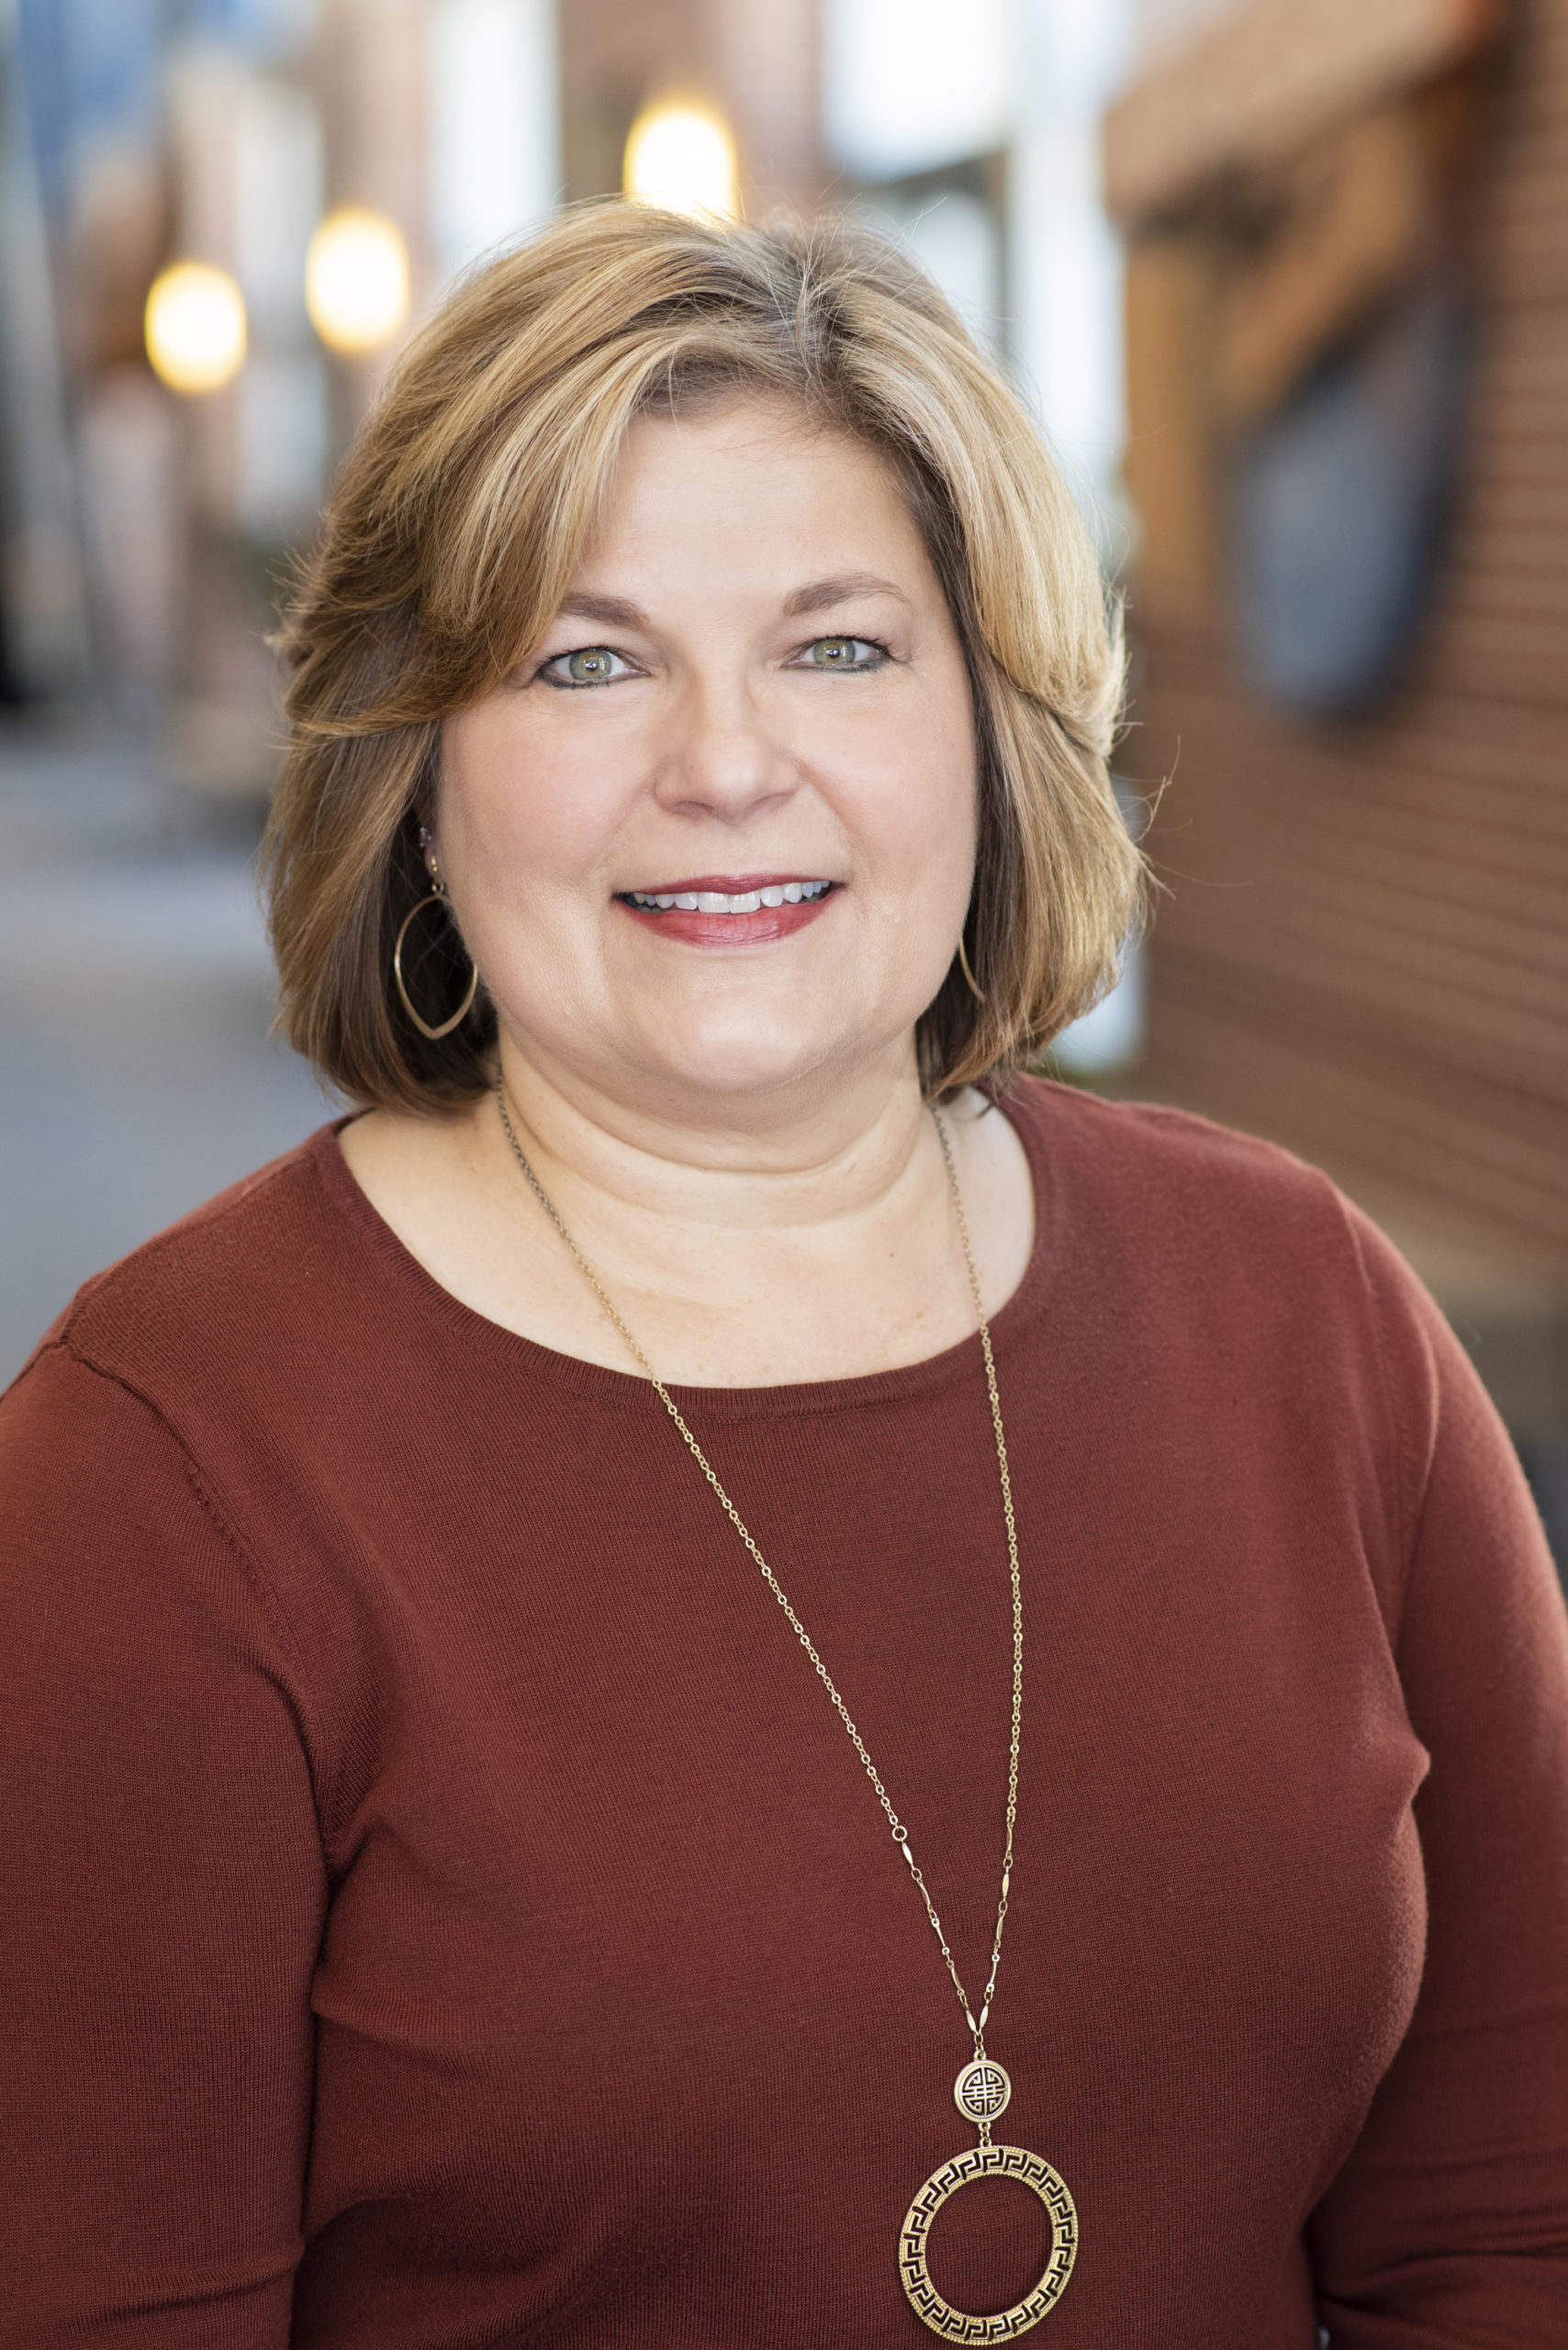 Meet Judy Transue — KC NARI's 2020 Chapter President